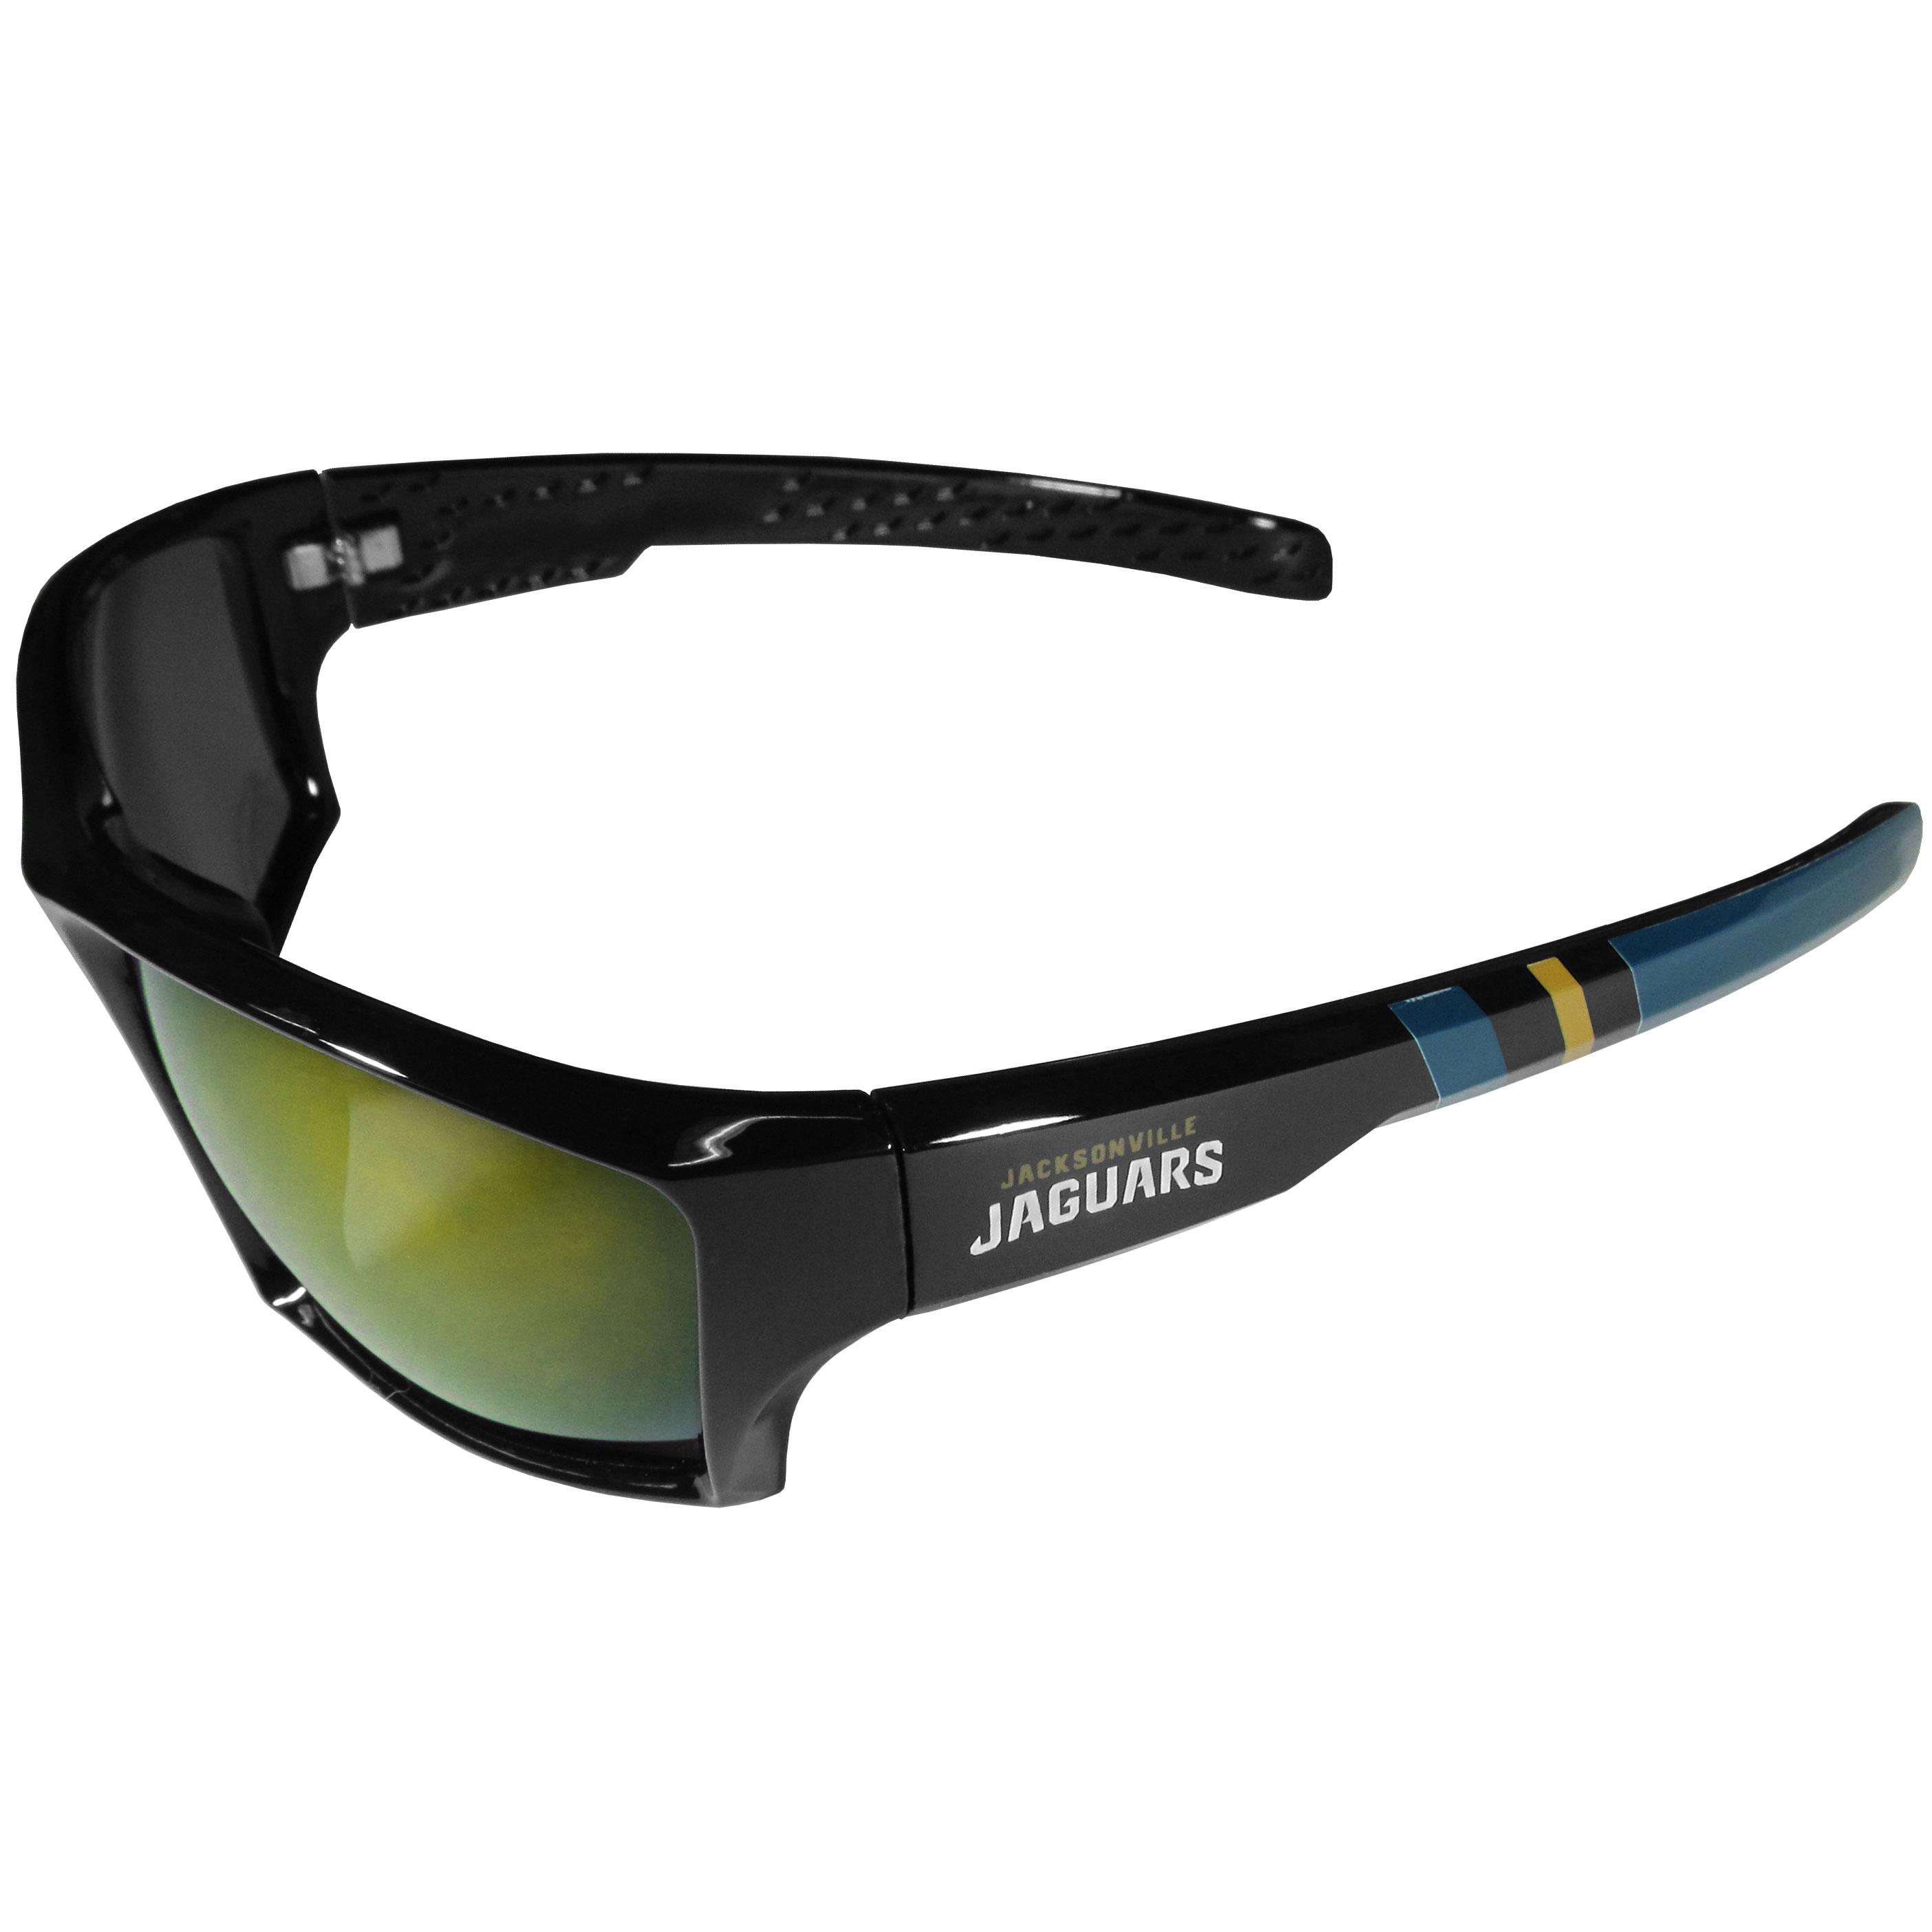 Jacksonville Jaguars Edge Wrap Sunglasses - Be an icon of edgy style while you're in the stadium cheering your Jacksonville Jaguars to victory with our polarized wrap sunglasses that feature 100% UVA/UVB rating for maximum UV protection. The light-weight frames are built to last with flex hinges for comfort and durability which make them perfect for driving or just lounging by the pool. The colorful rubber grips on the arms of these fashionable sunglasses make them perfect for someone with an active lifestyle. Whether you are hiking, fishing, boating, running on the beach, golfing or playing your favorite sport these designer frames will set you apart. Our edge wrap sunglasses are true quality eyewear at an affordable price. The wrap style frames come with team colored stripes and team logos so you can show off your die-hard team pride while protecting your eyes from those bright sun rays.